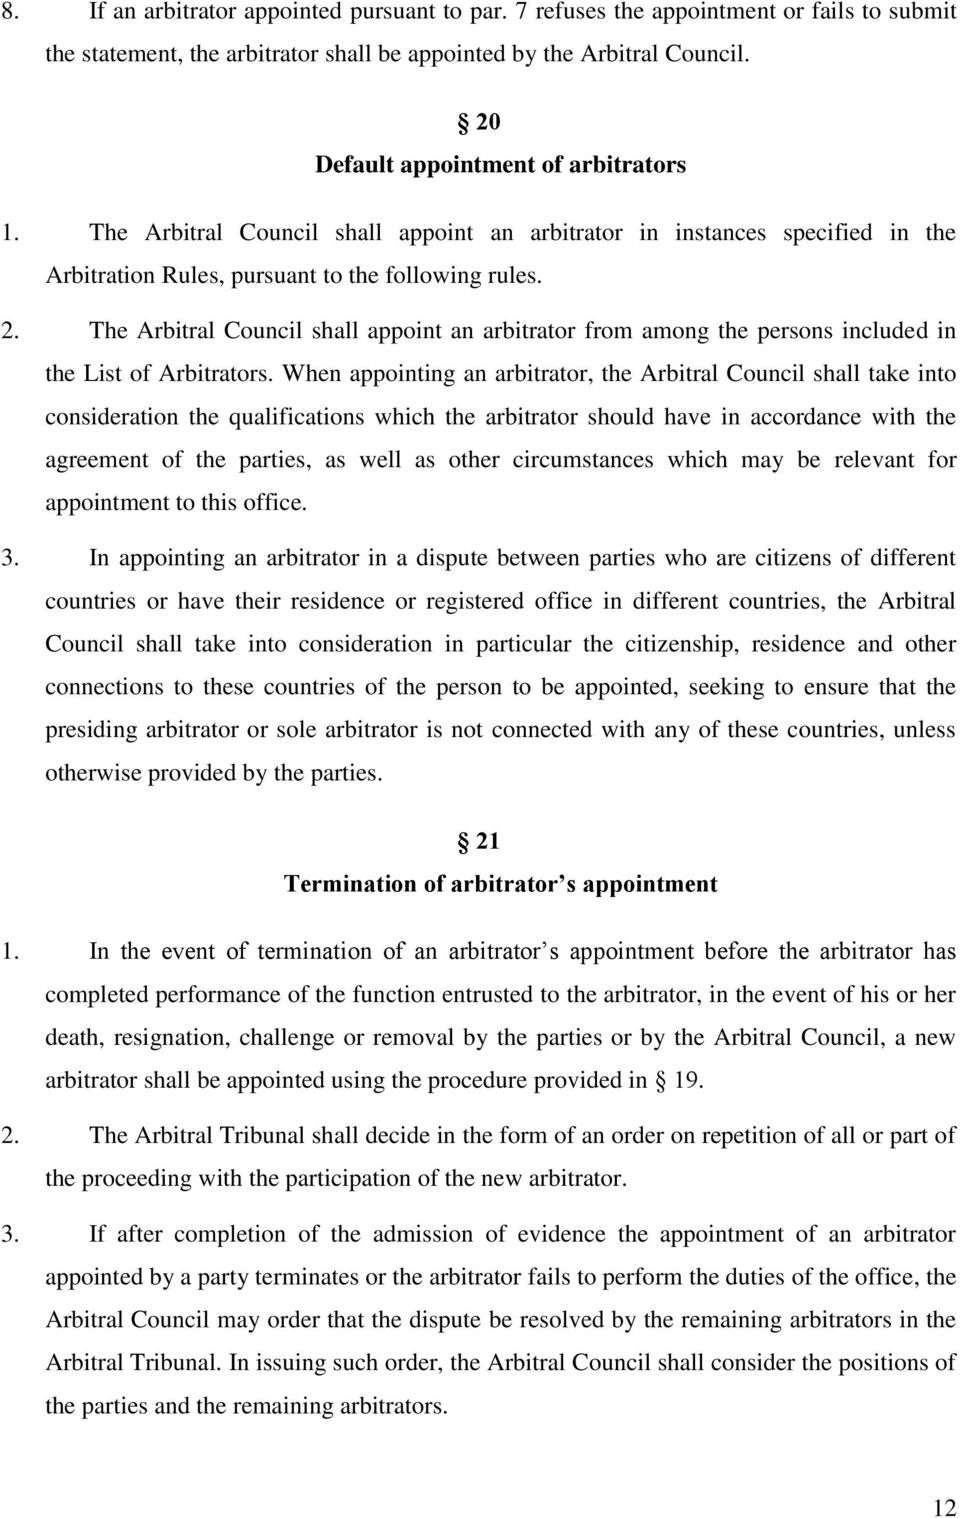 The Arbitral Council shall appoint an arbitrator from among the persons included in the List of Arbitrators.